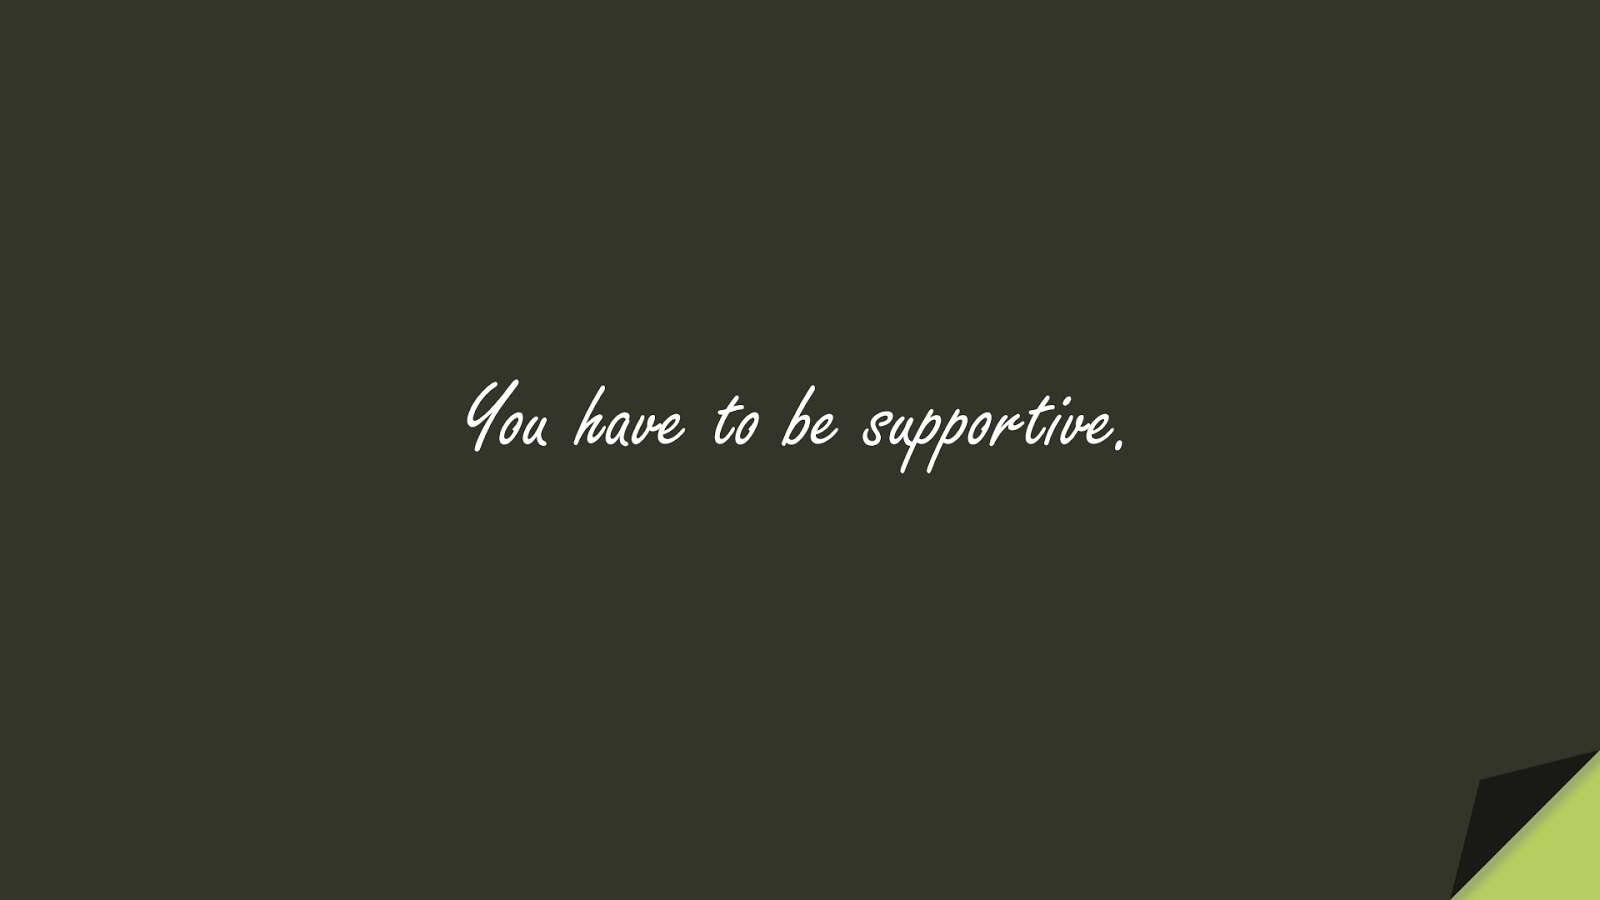 You have to be supportive.FALSE